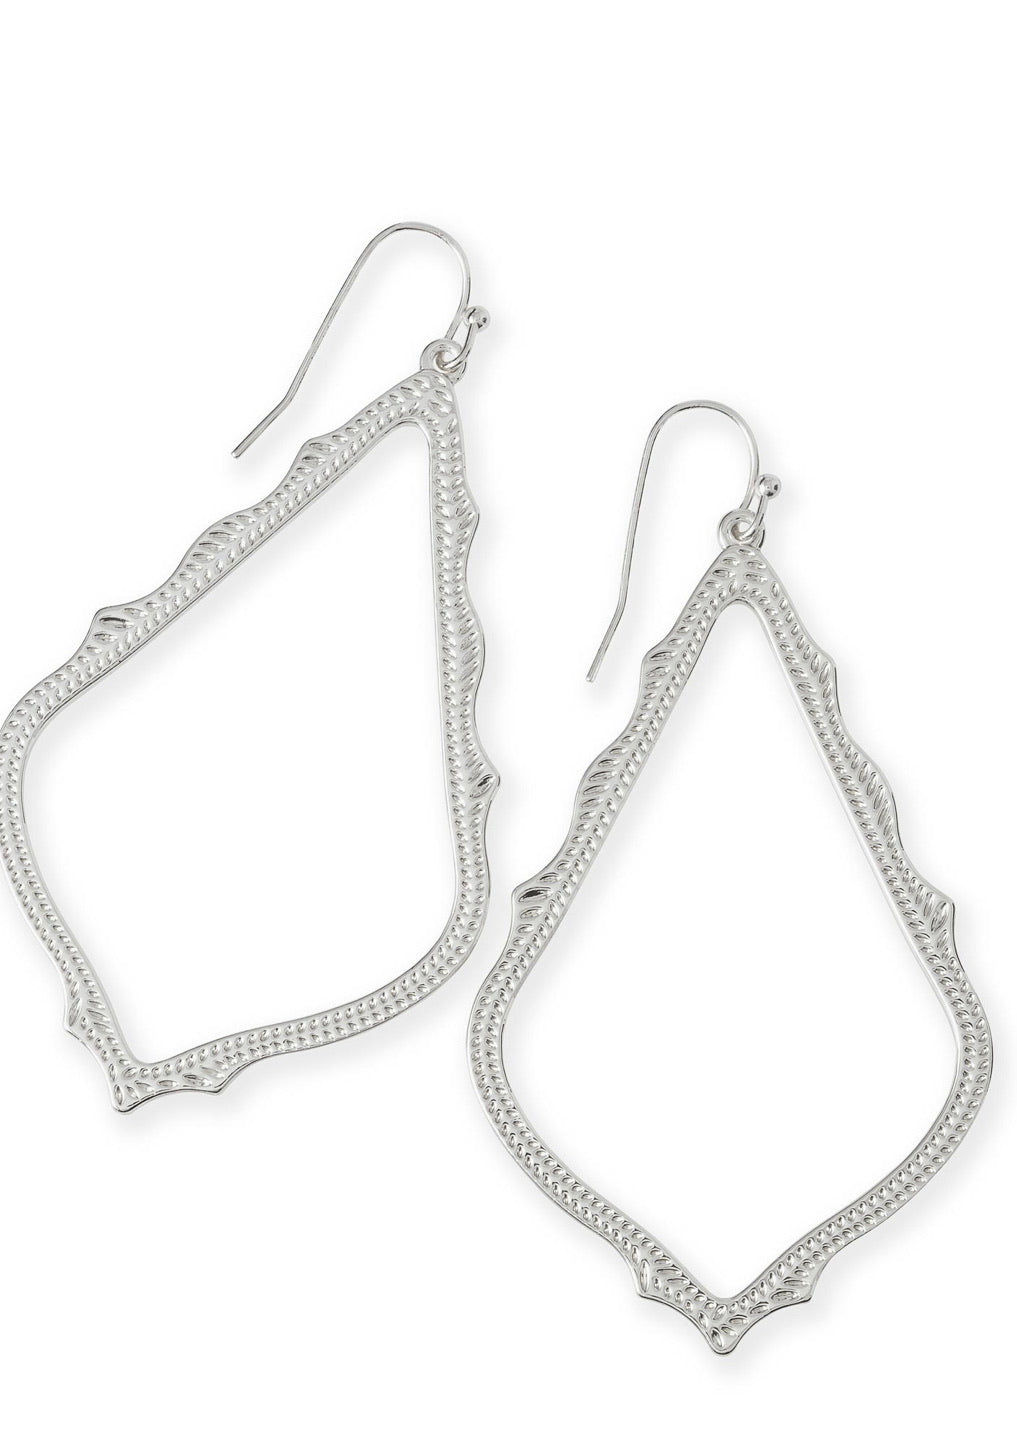 The Sophee drop earring in silver